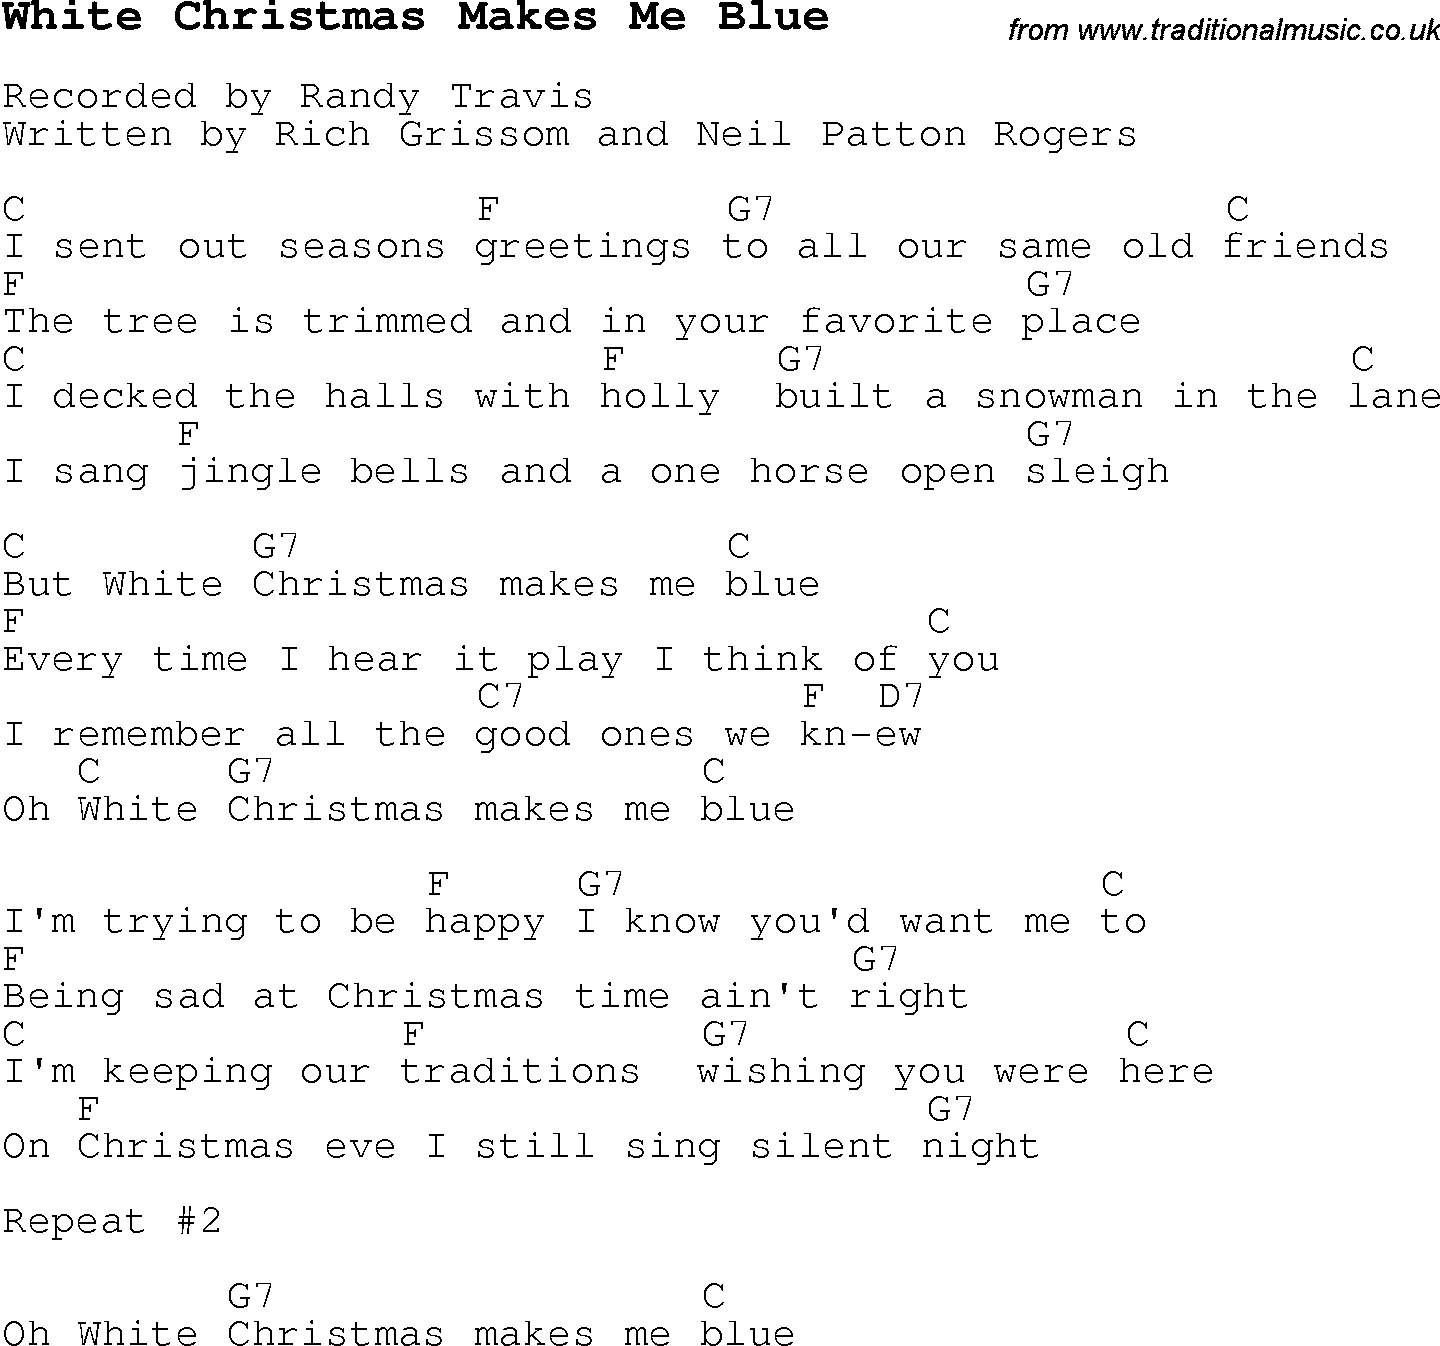 White Christmas Chords Christmas Carolsong Lyrics With Chords For White Christmas Makes Me